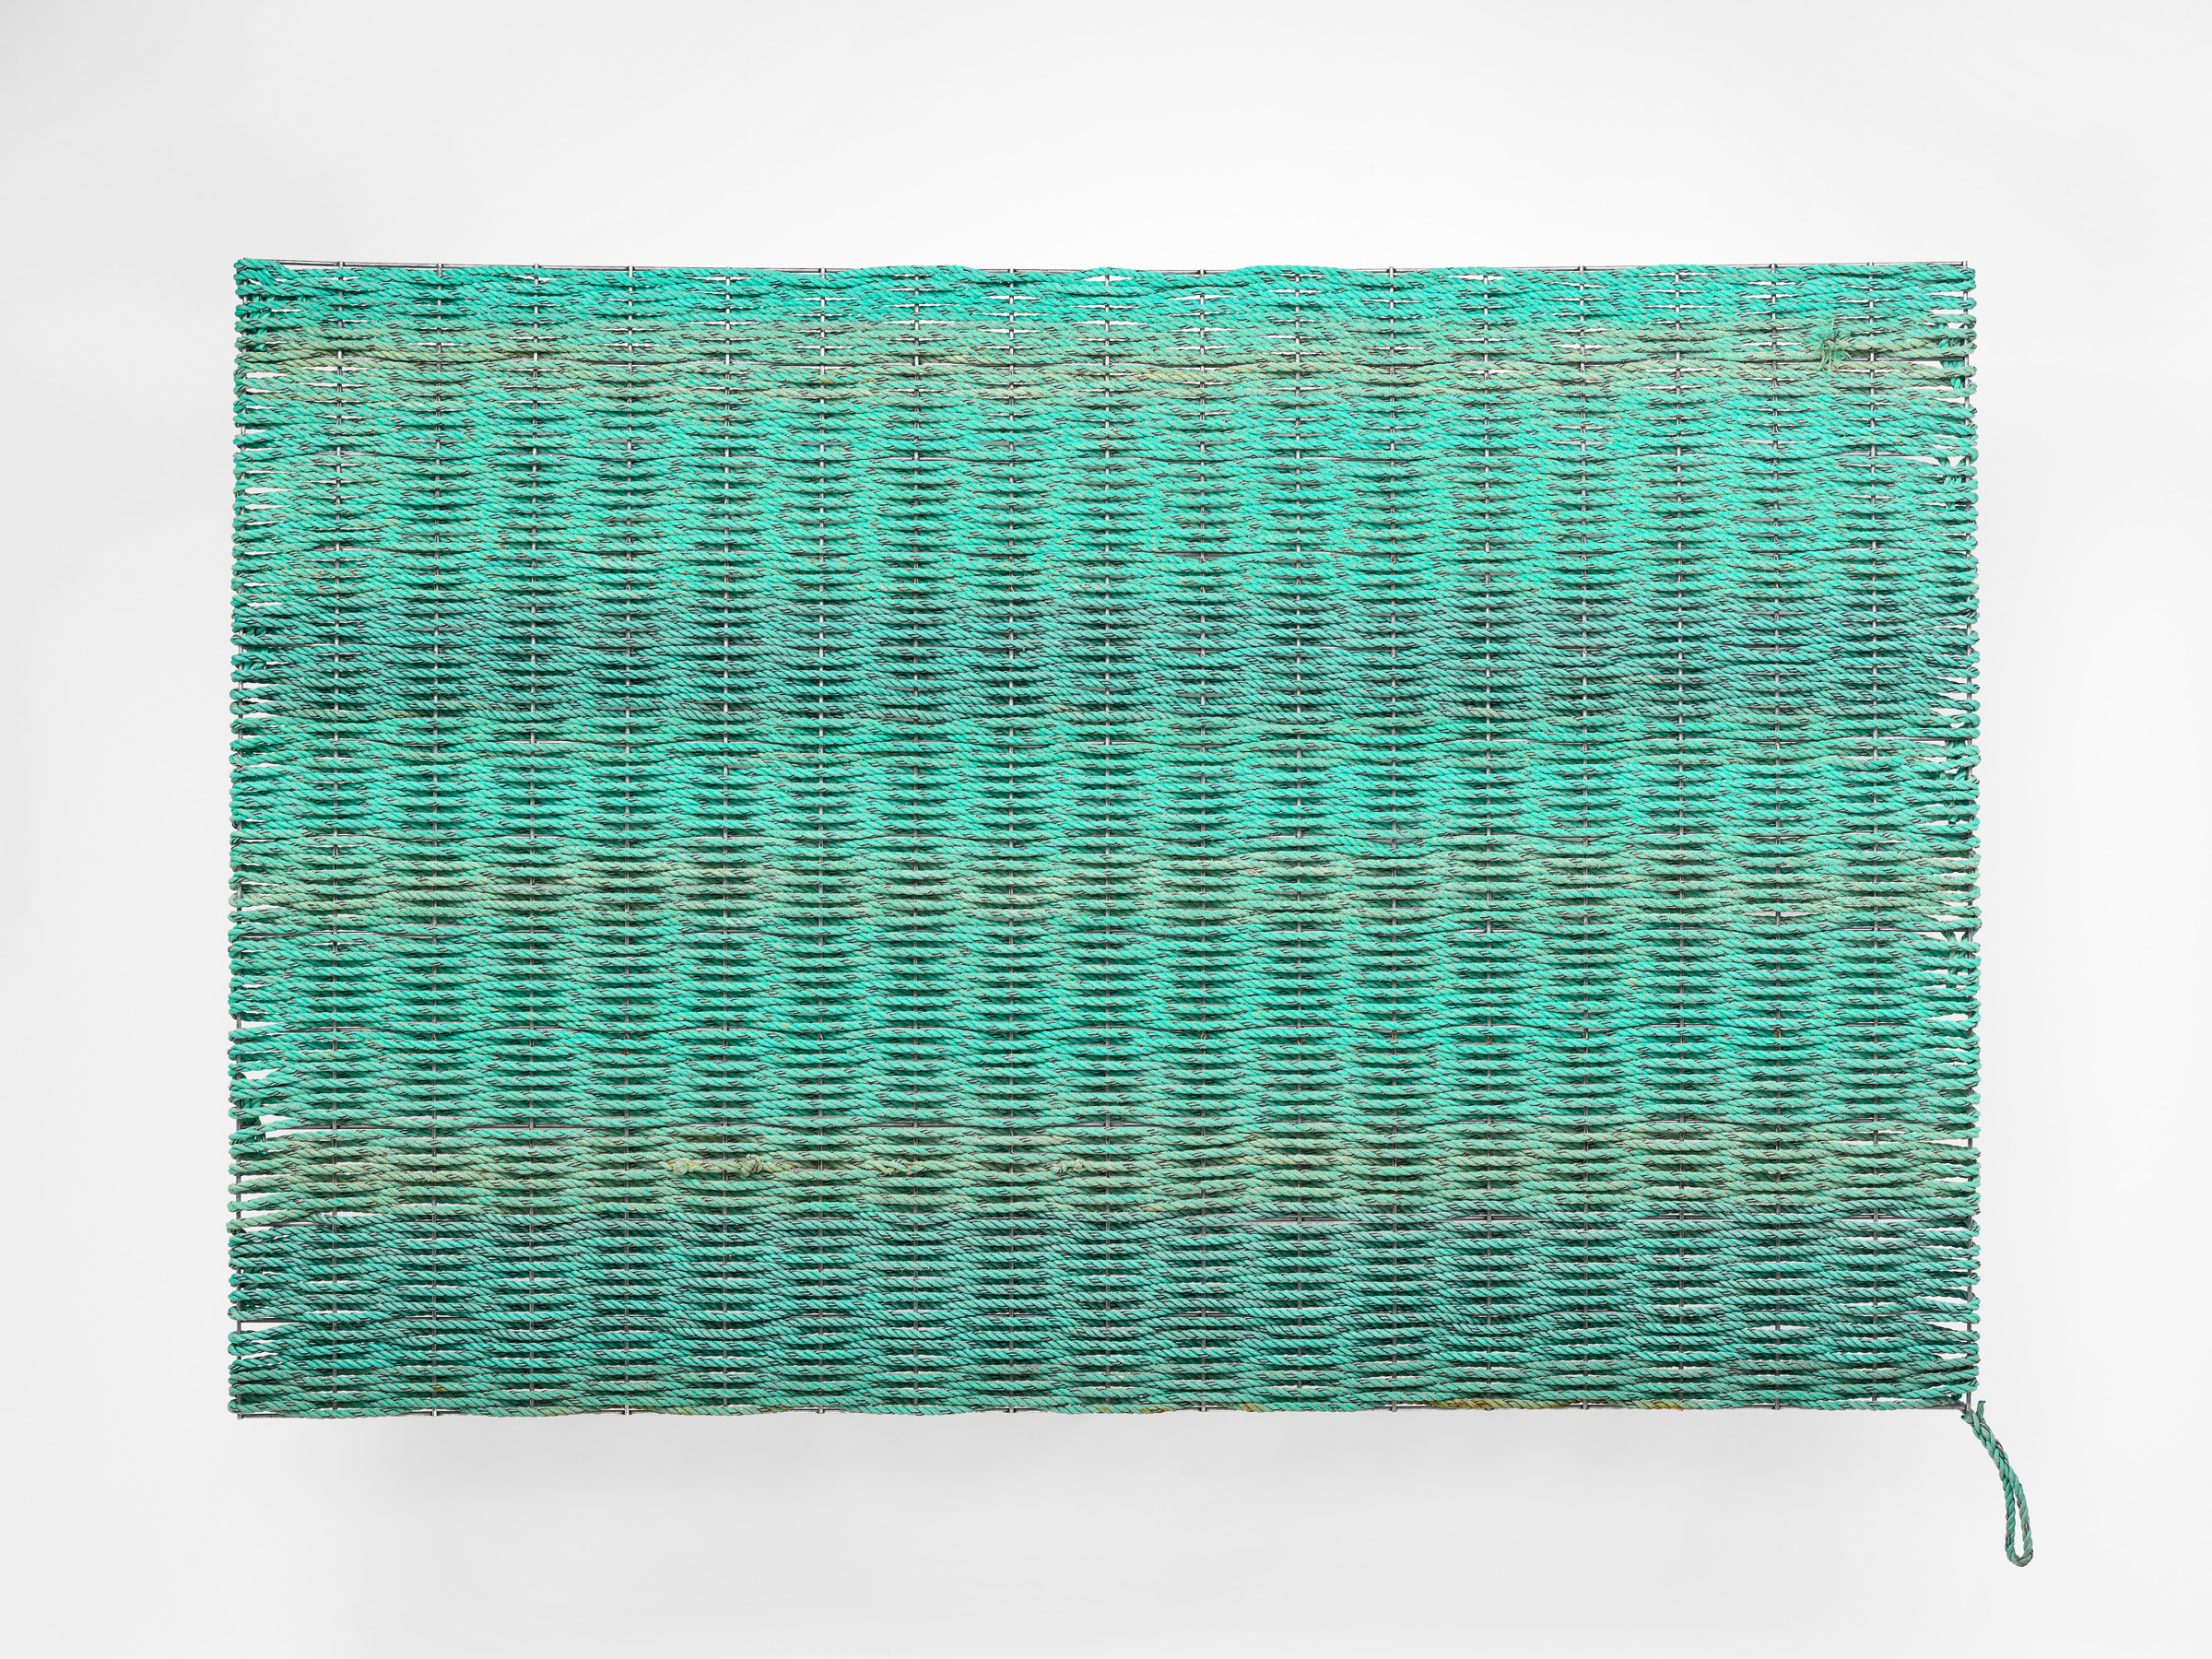 Bluish Green   2016  Weld mesh & discarded lobster rope  120 x 180 x 3cm  photographer Grant Hancock